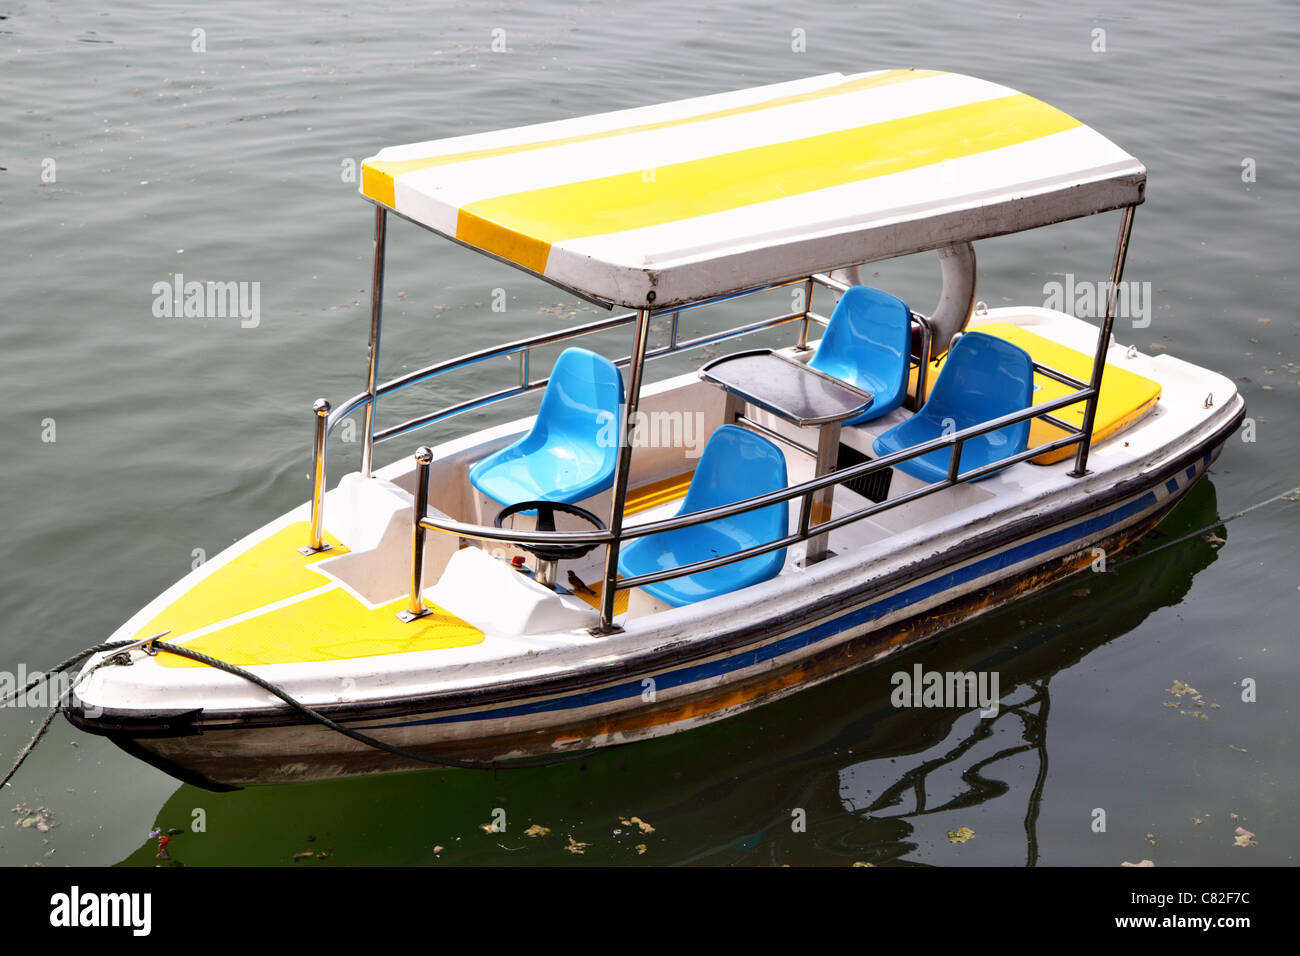 Electric traction recreation boat with awning close up - Stock Image